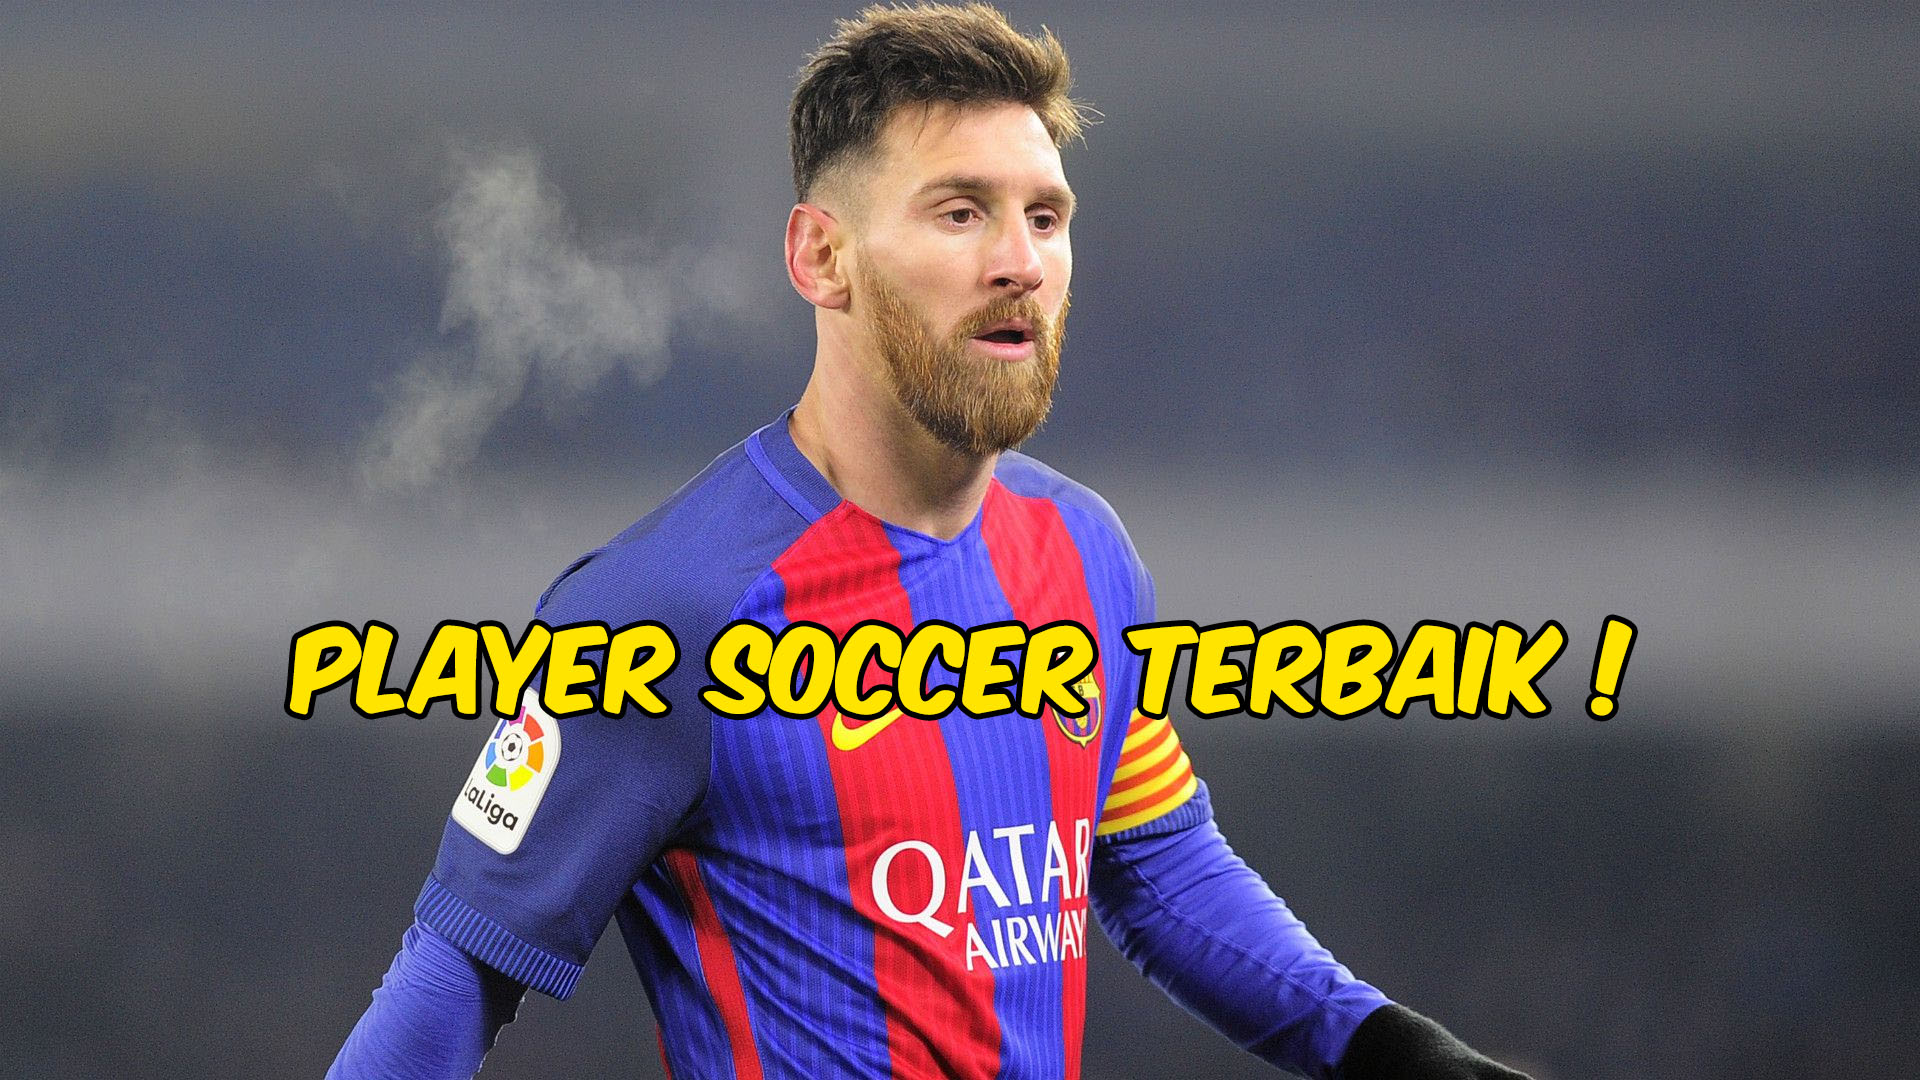 * Lionel Messi * Soccer Player terbaik di planet ini !